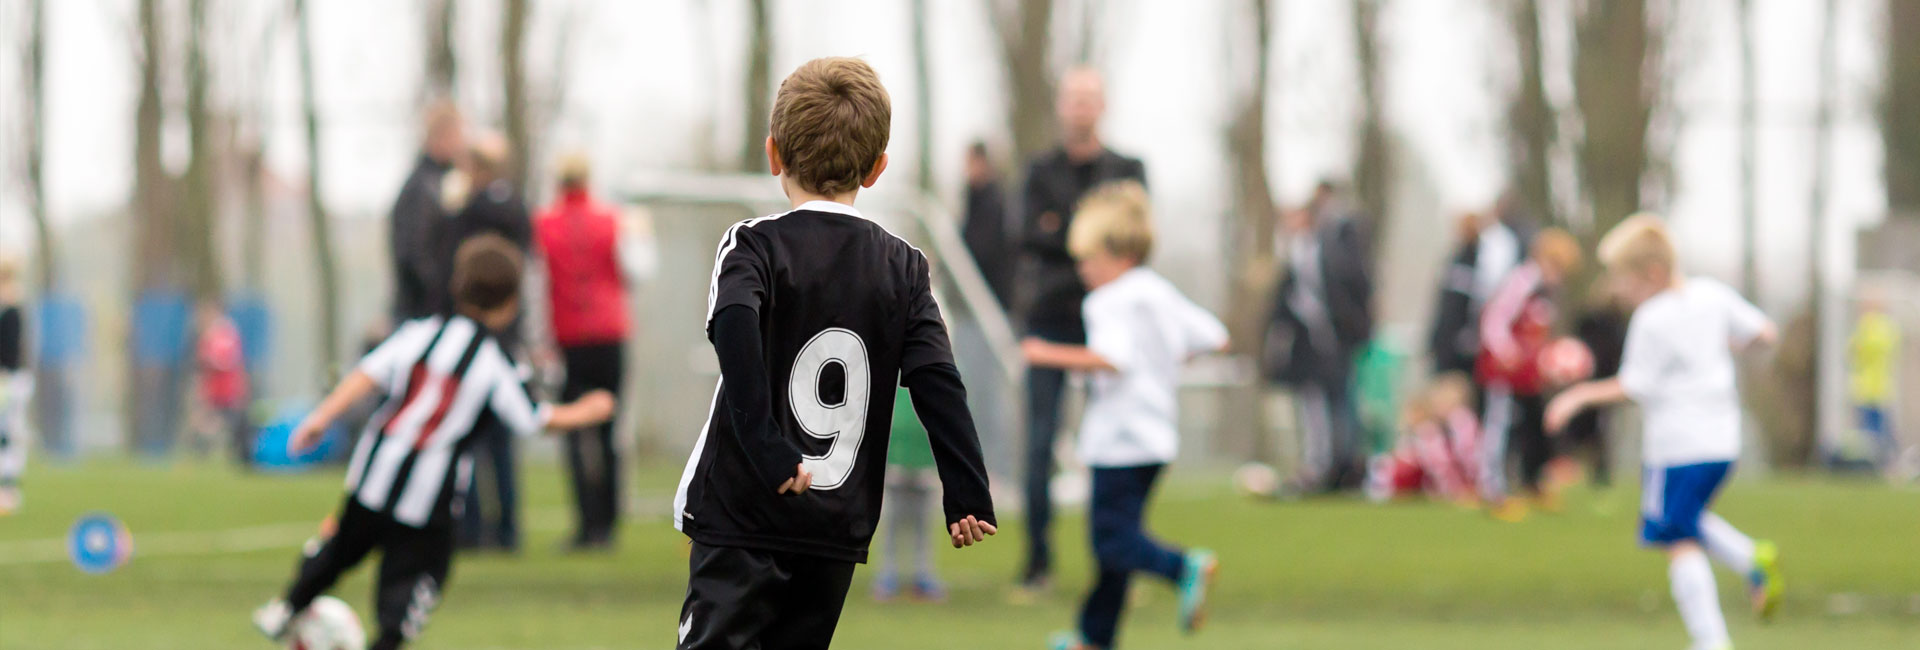 Safeguarding children in sport